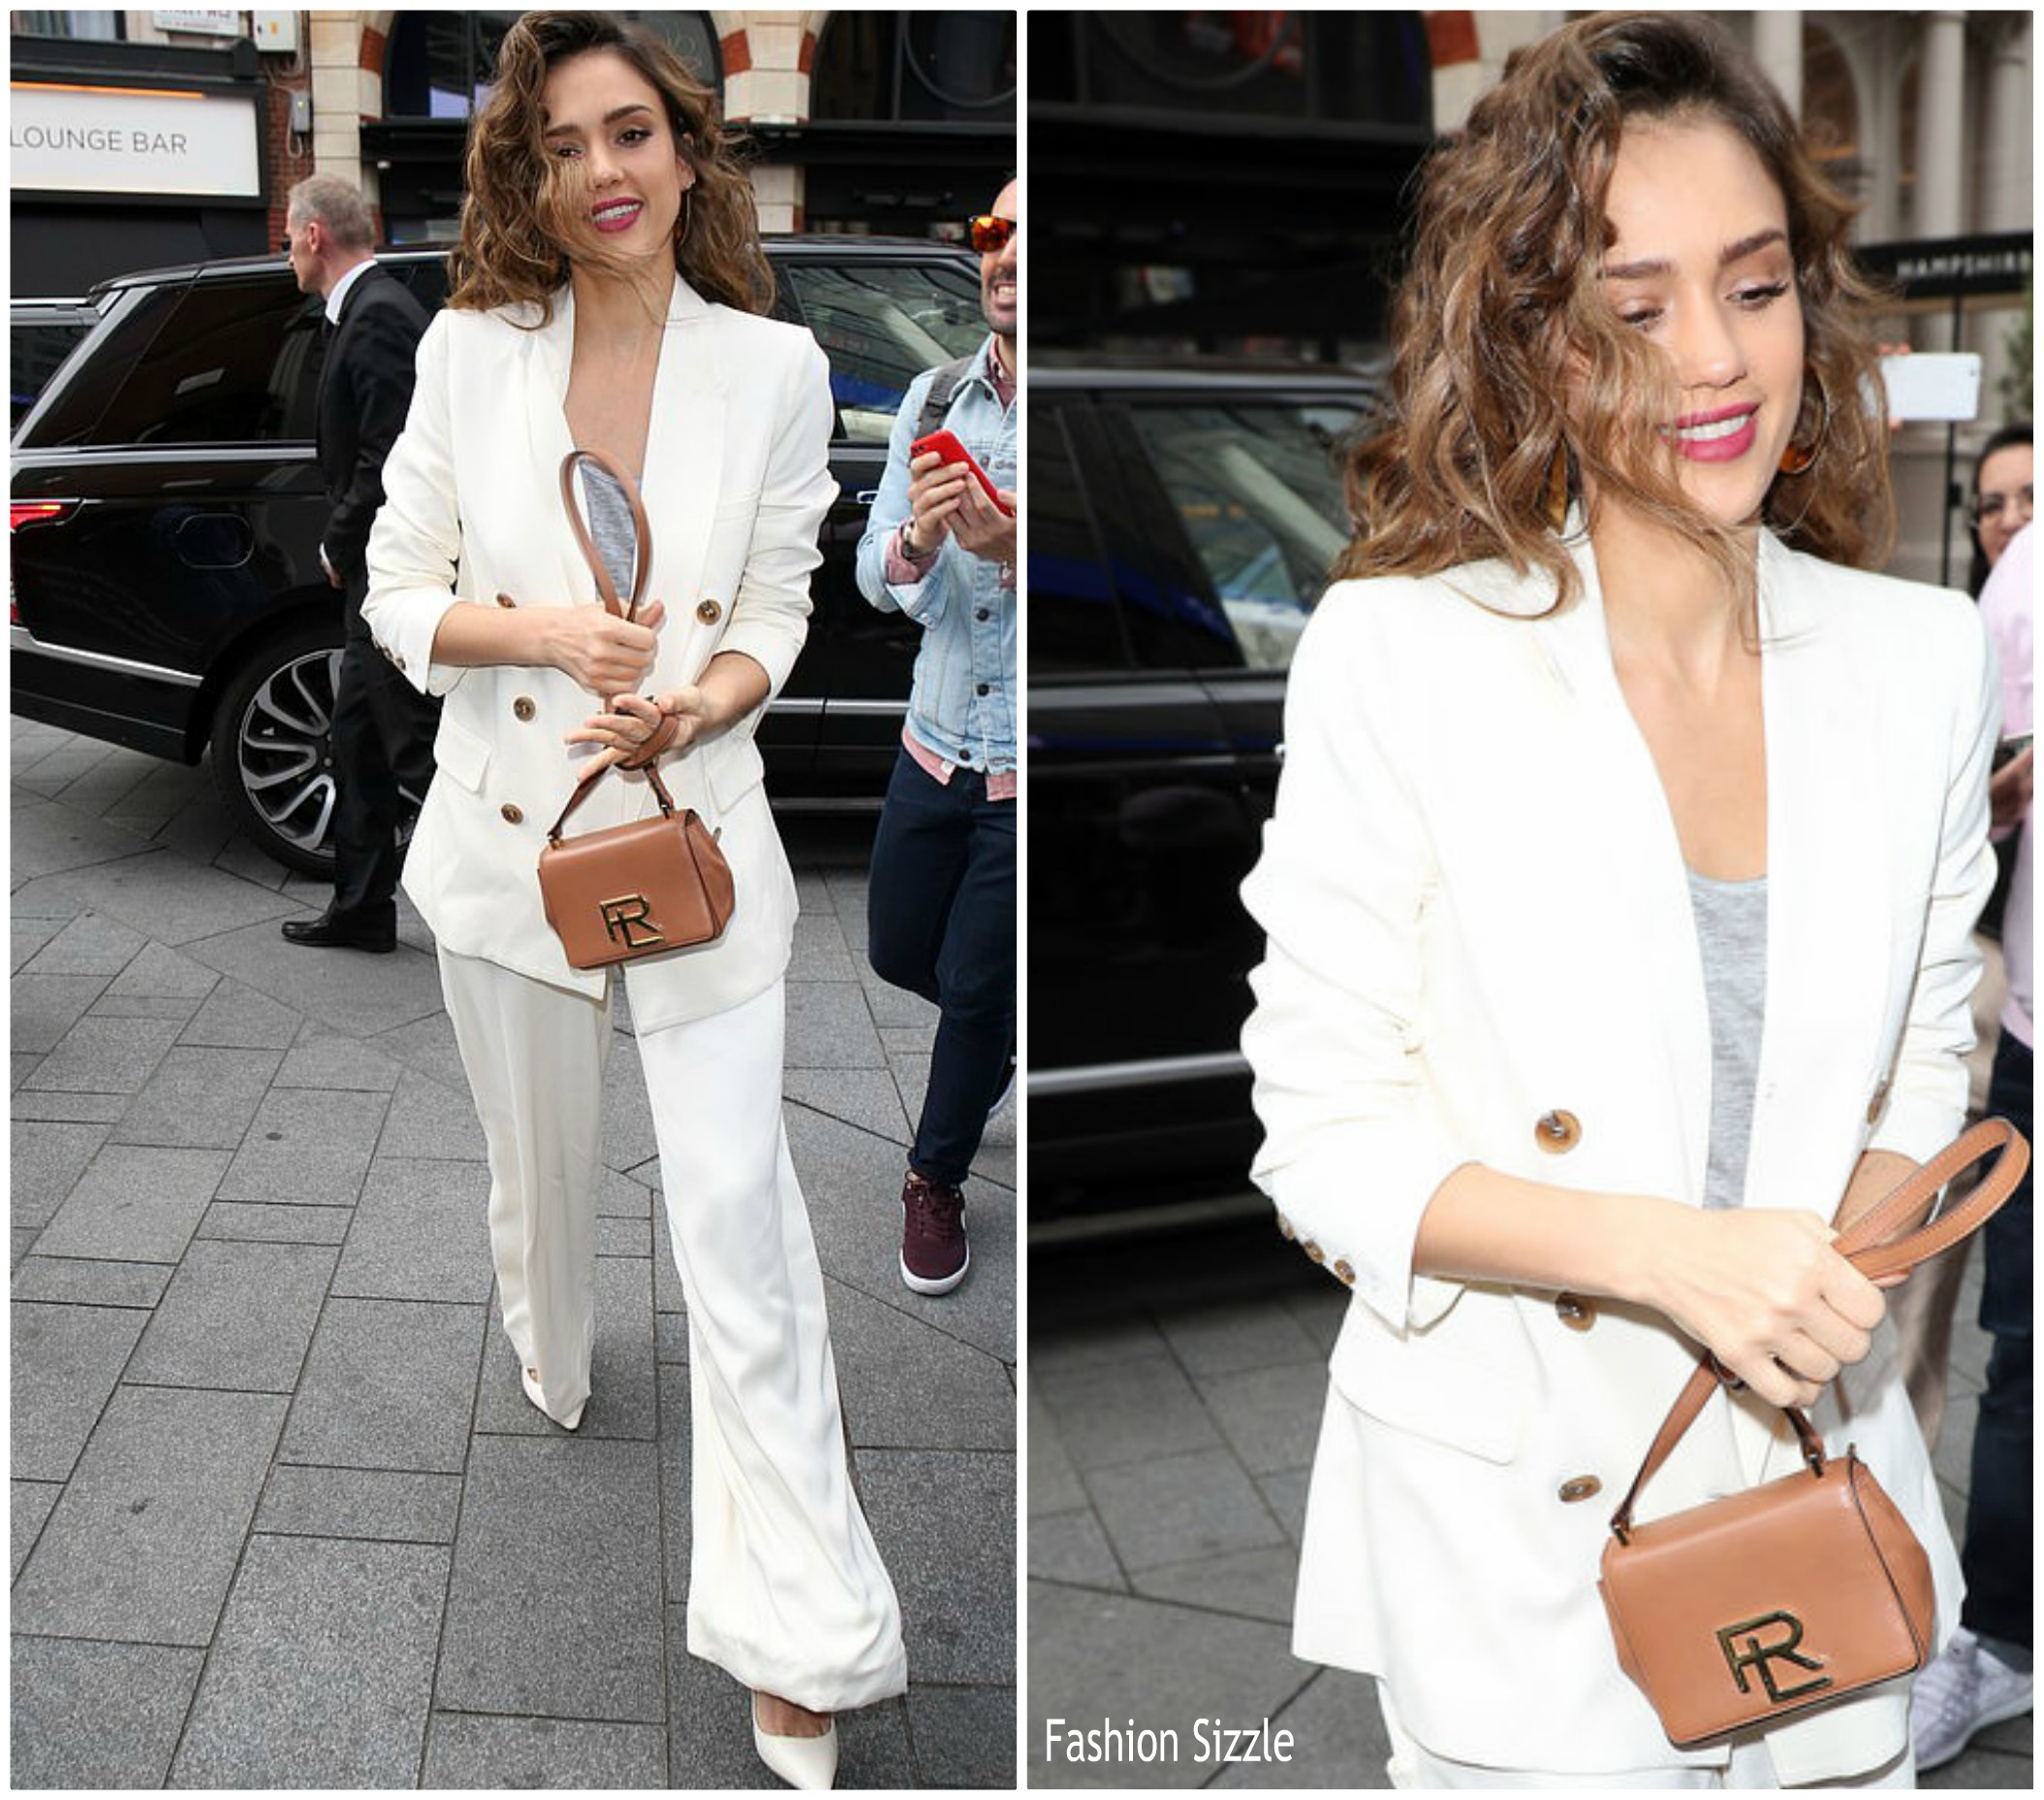 jessica-alba-in-white-suit-arriving-at-global-radio-studios-in-london